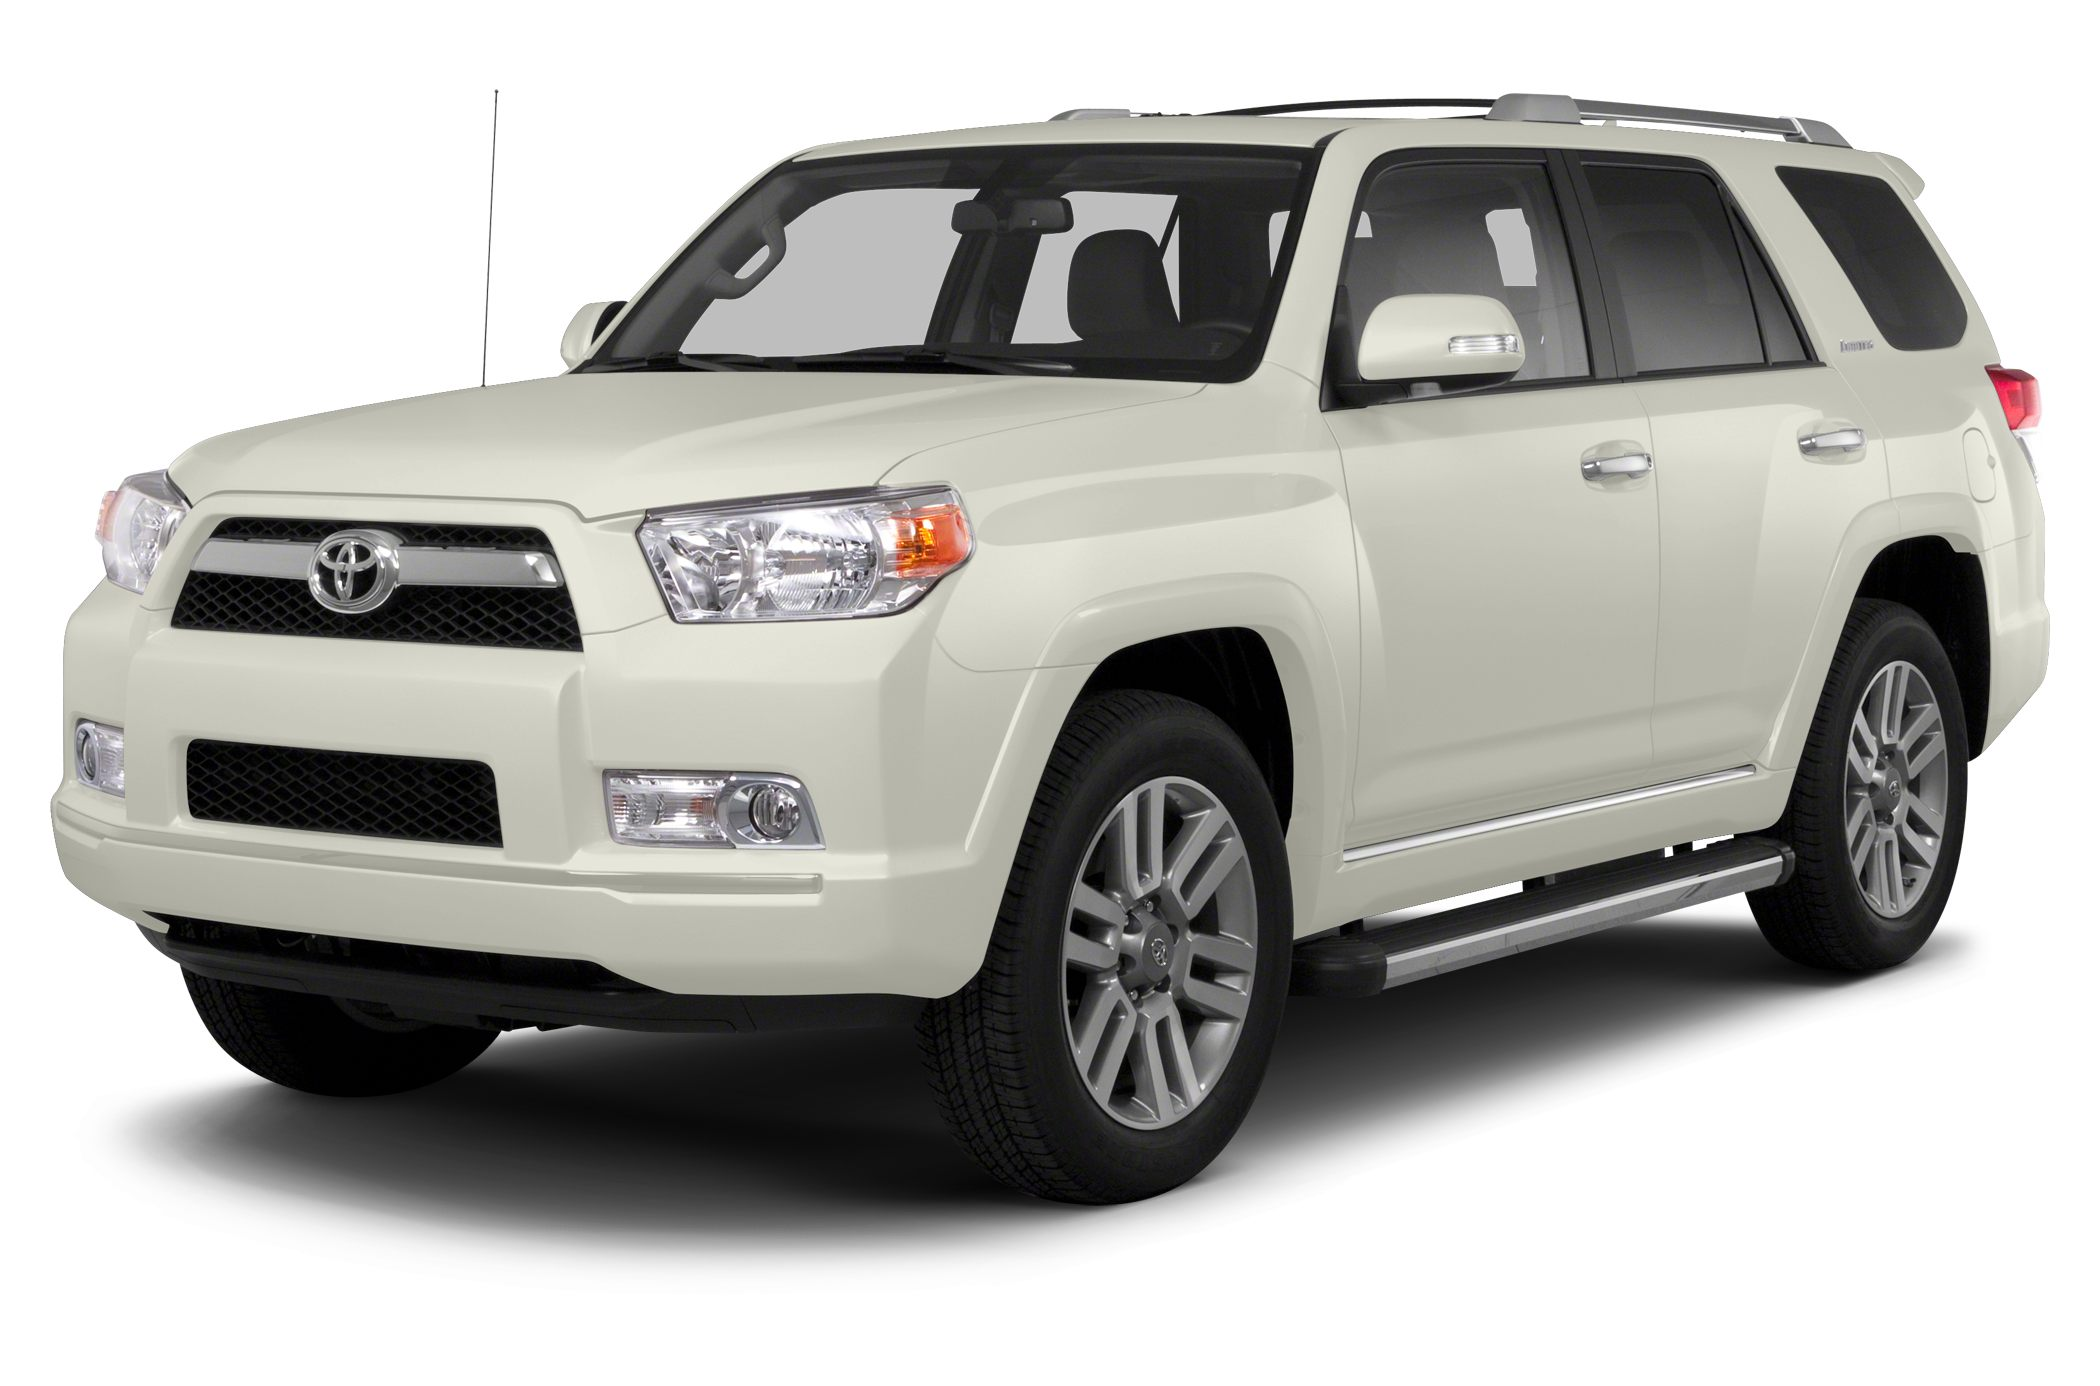 USC30TOS072B021001 Great Description About Used toyota 4runner for Sale